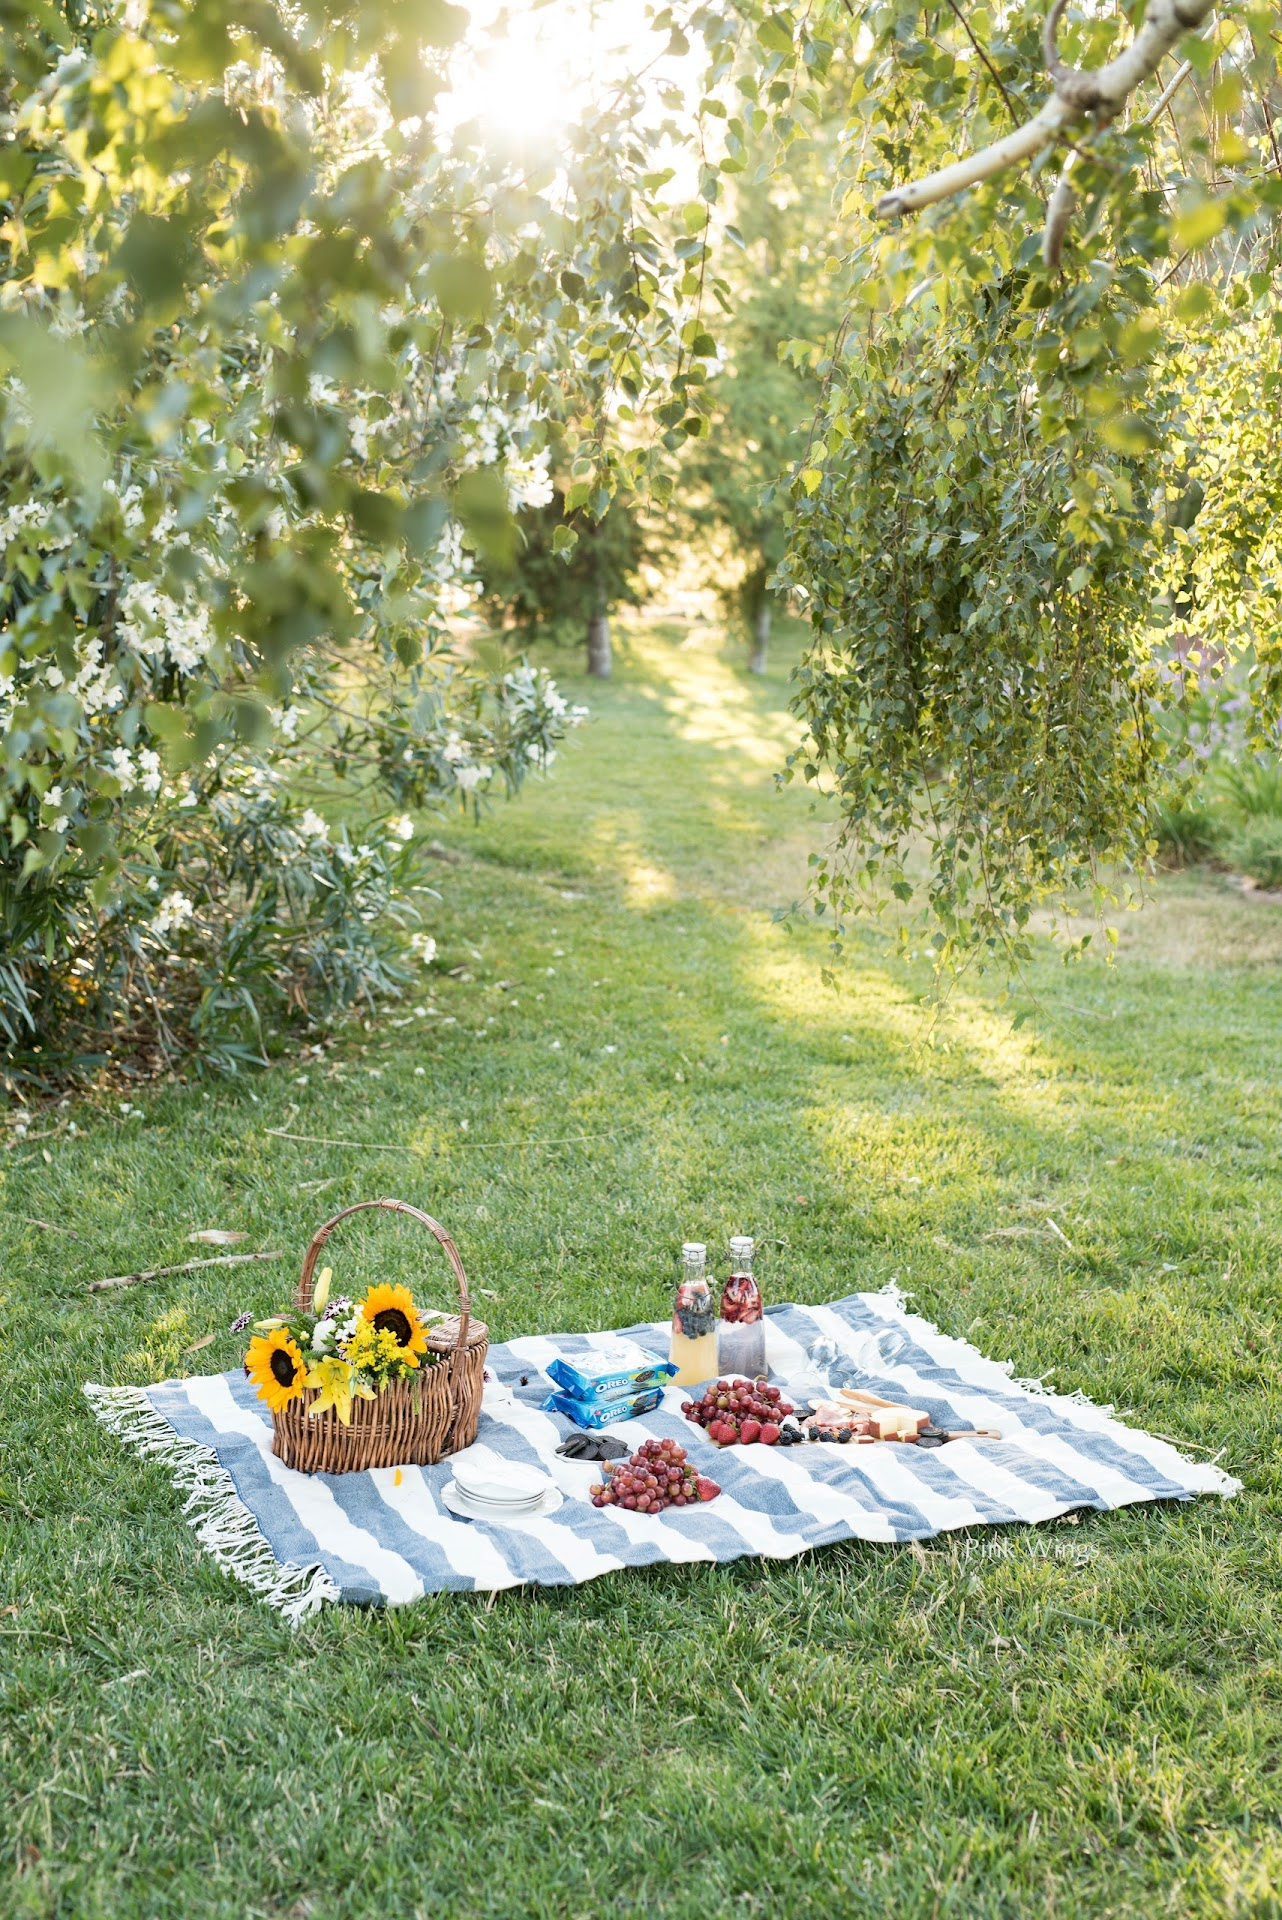 romantic picnic, picnic for two, how to throw the perfect picnic, picnic ideas, where to buy a picnic basket, tips for picnics, picnic blanket, picnic food ideas, picnic dessert